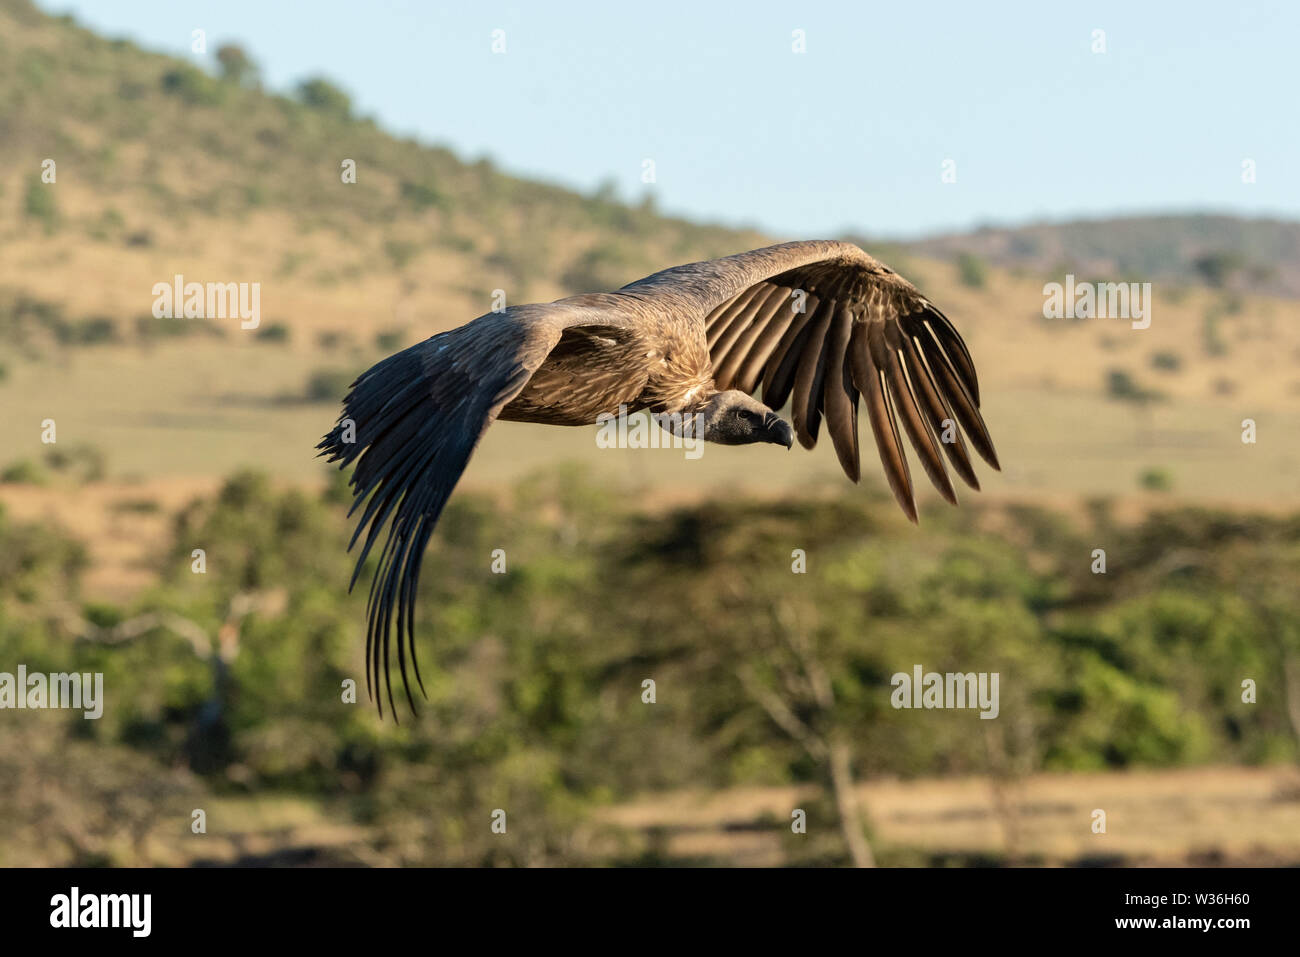 African white-backed vulture flies over wooded savannah - Stock Image